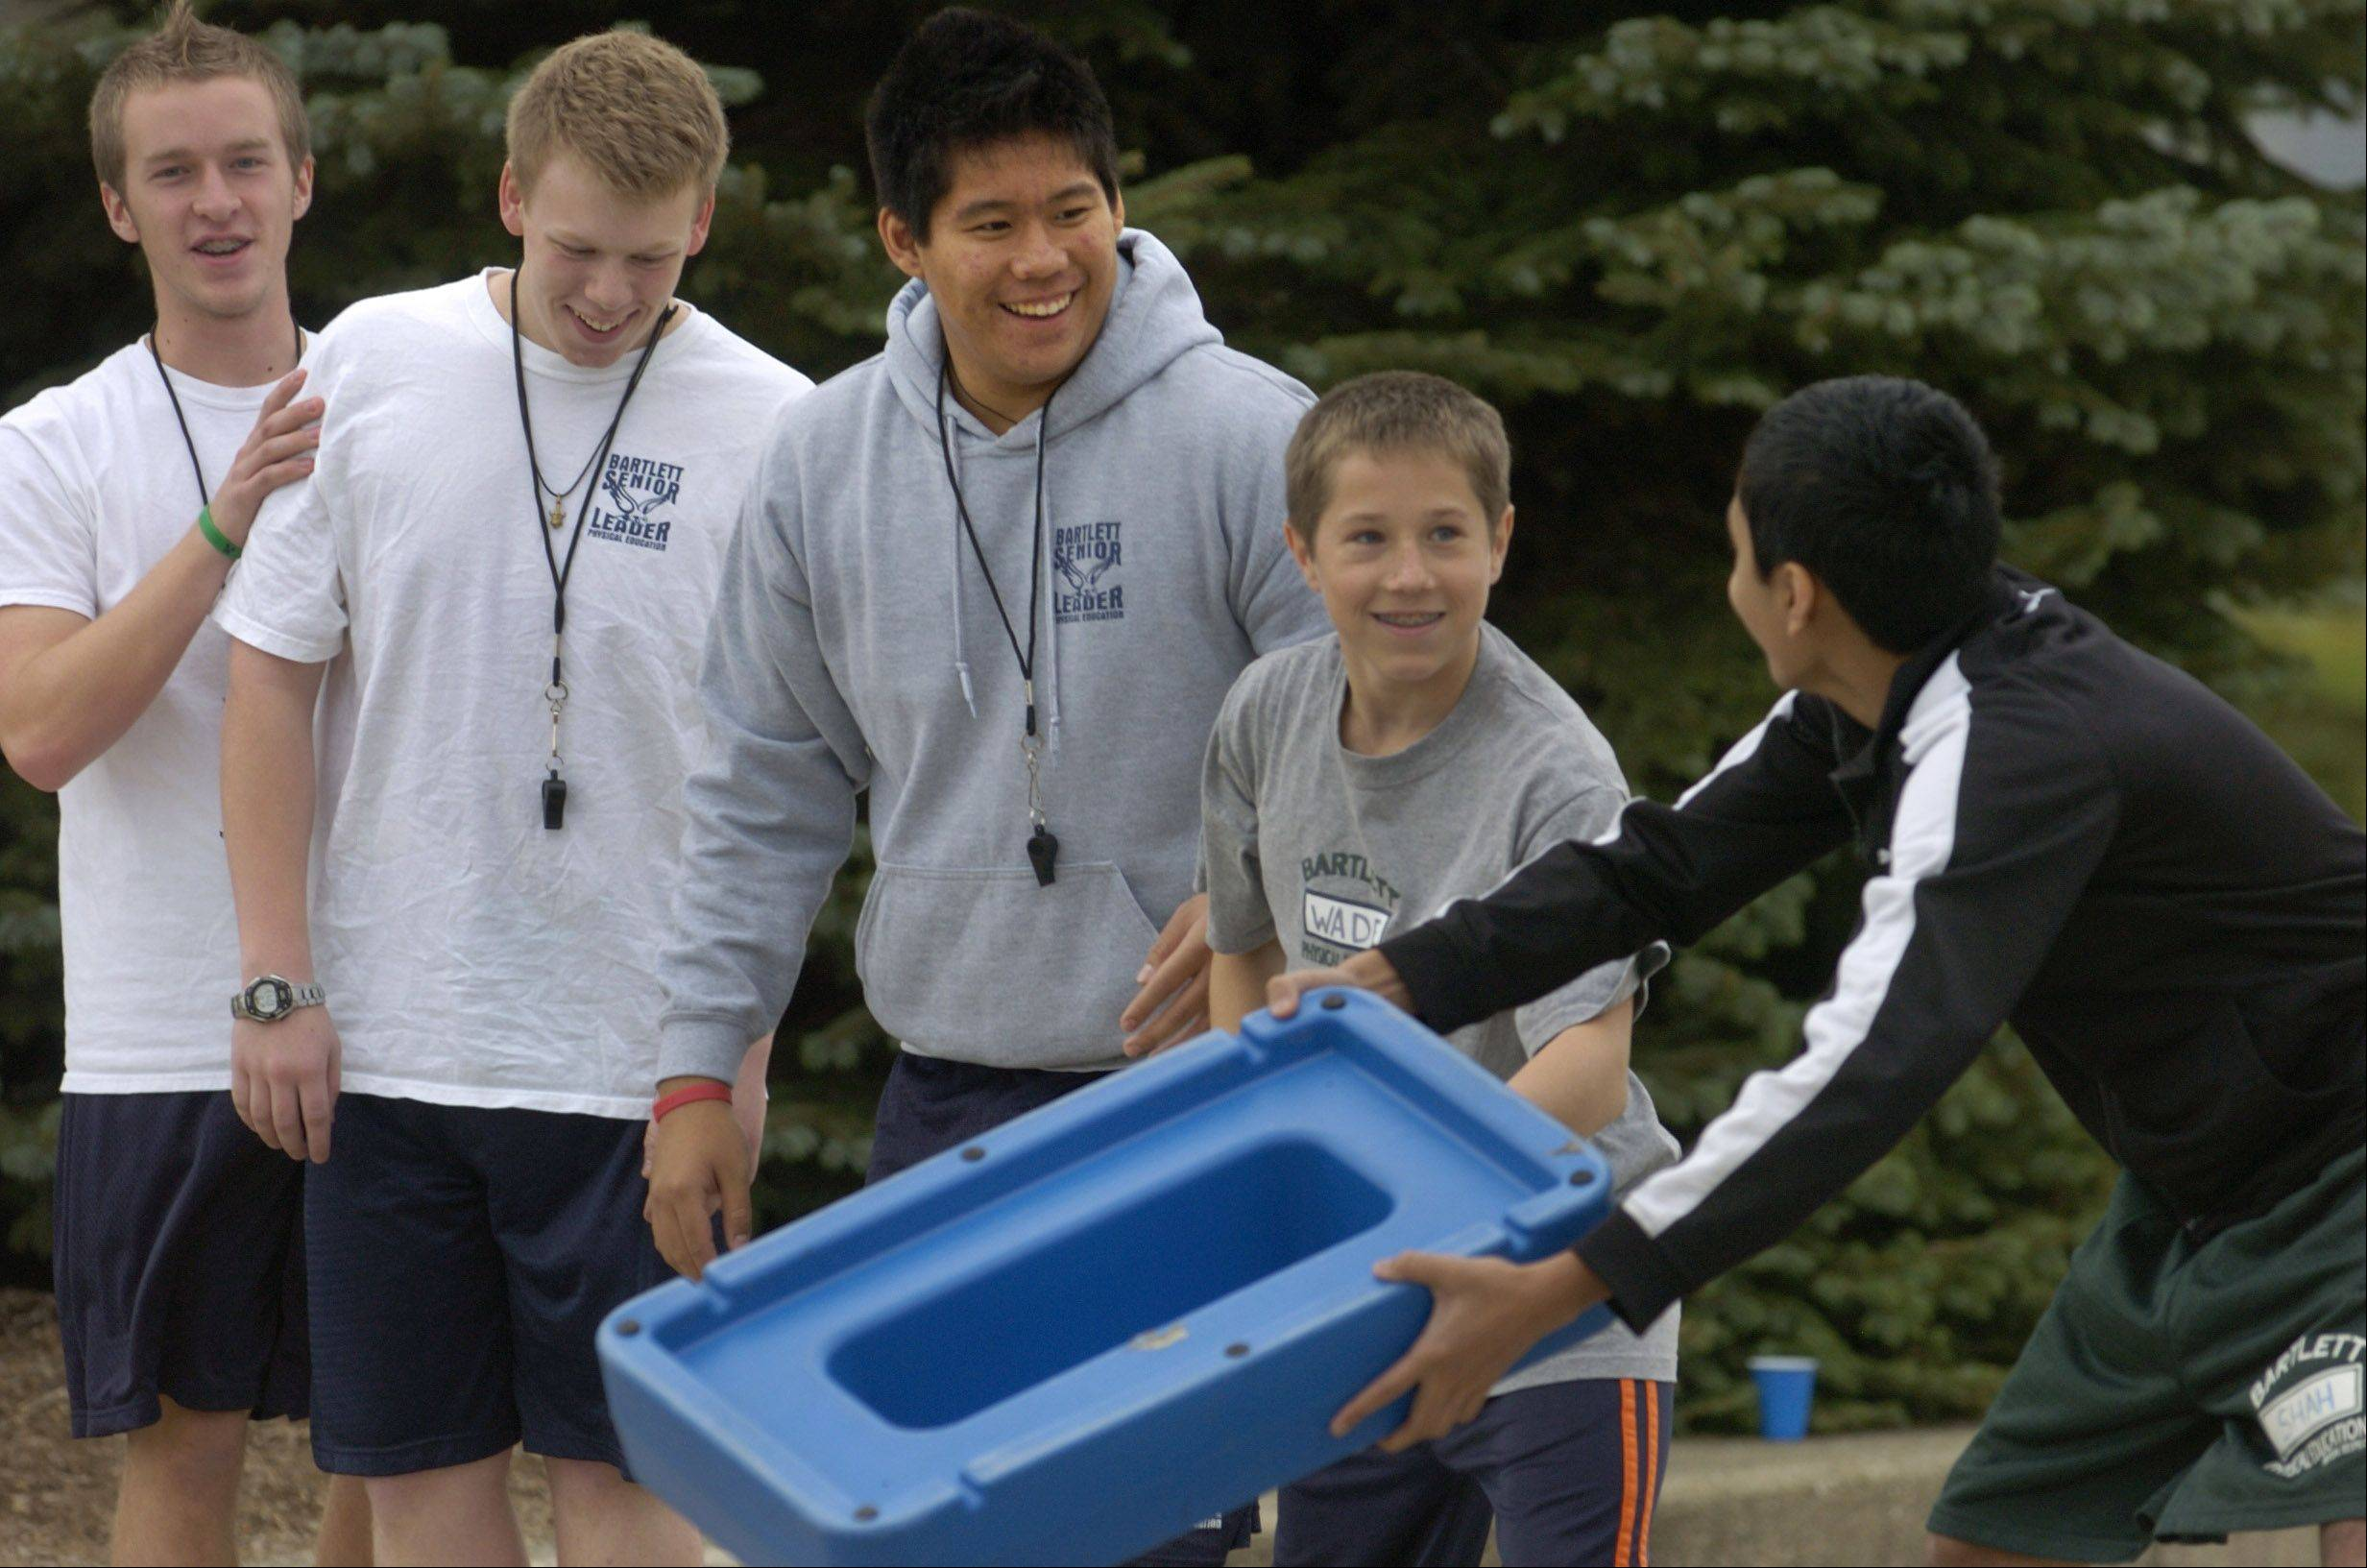 Seniors, from left, Nick LoBosco, Alex Schwartz and Pierce Tinio, help freshmen Jacob Wade and Miten Shah with a team-building exercise called Raging River, as part of Bartlett High School senior leaders program.